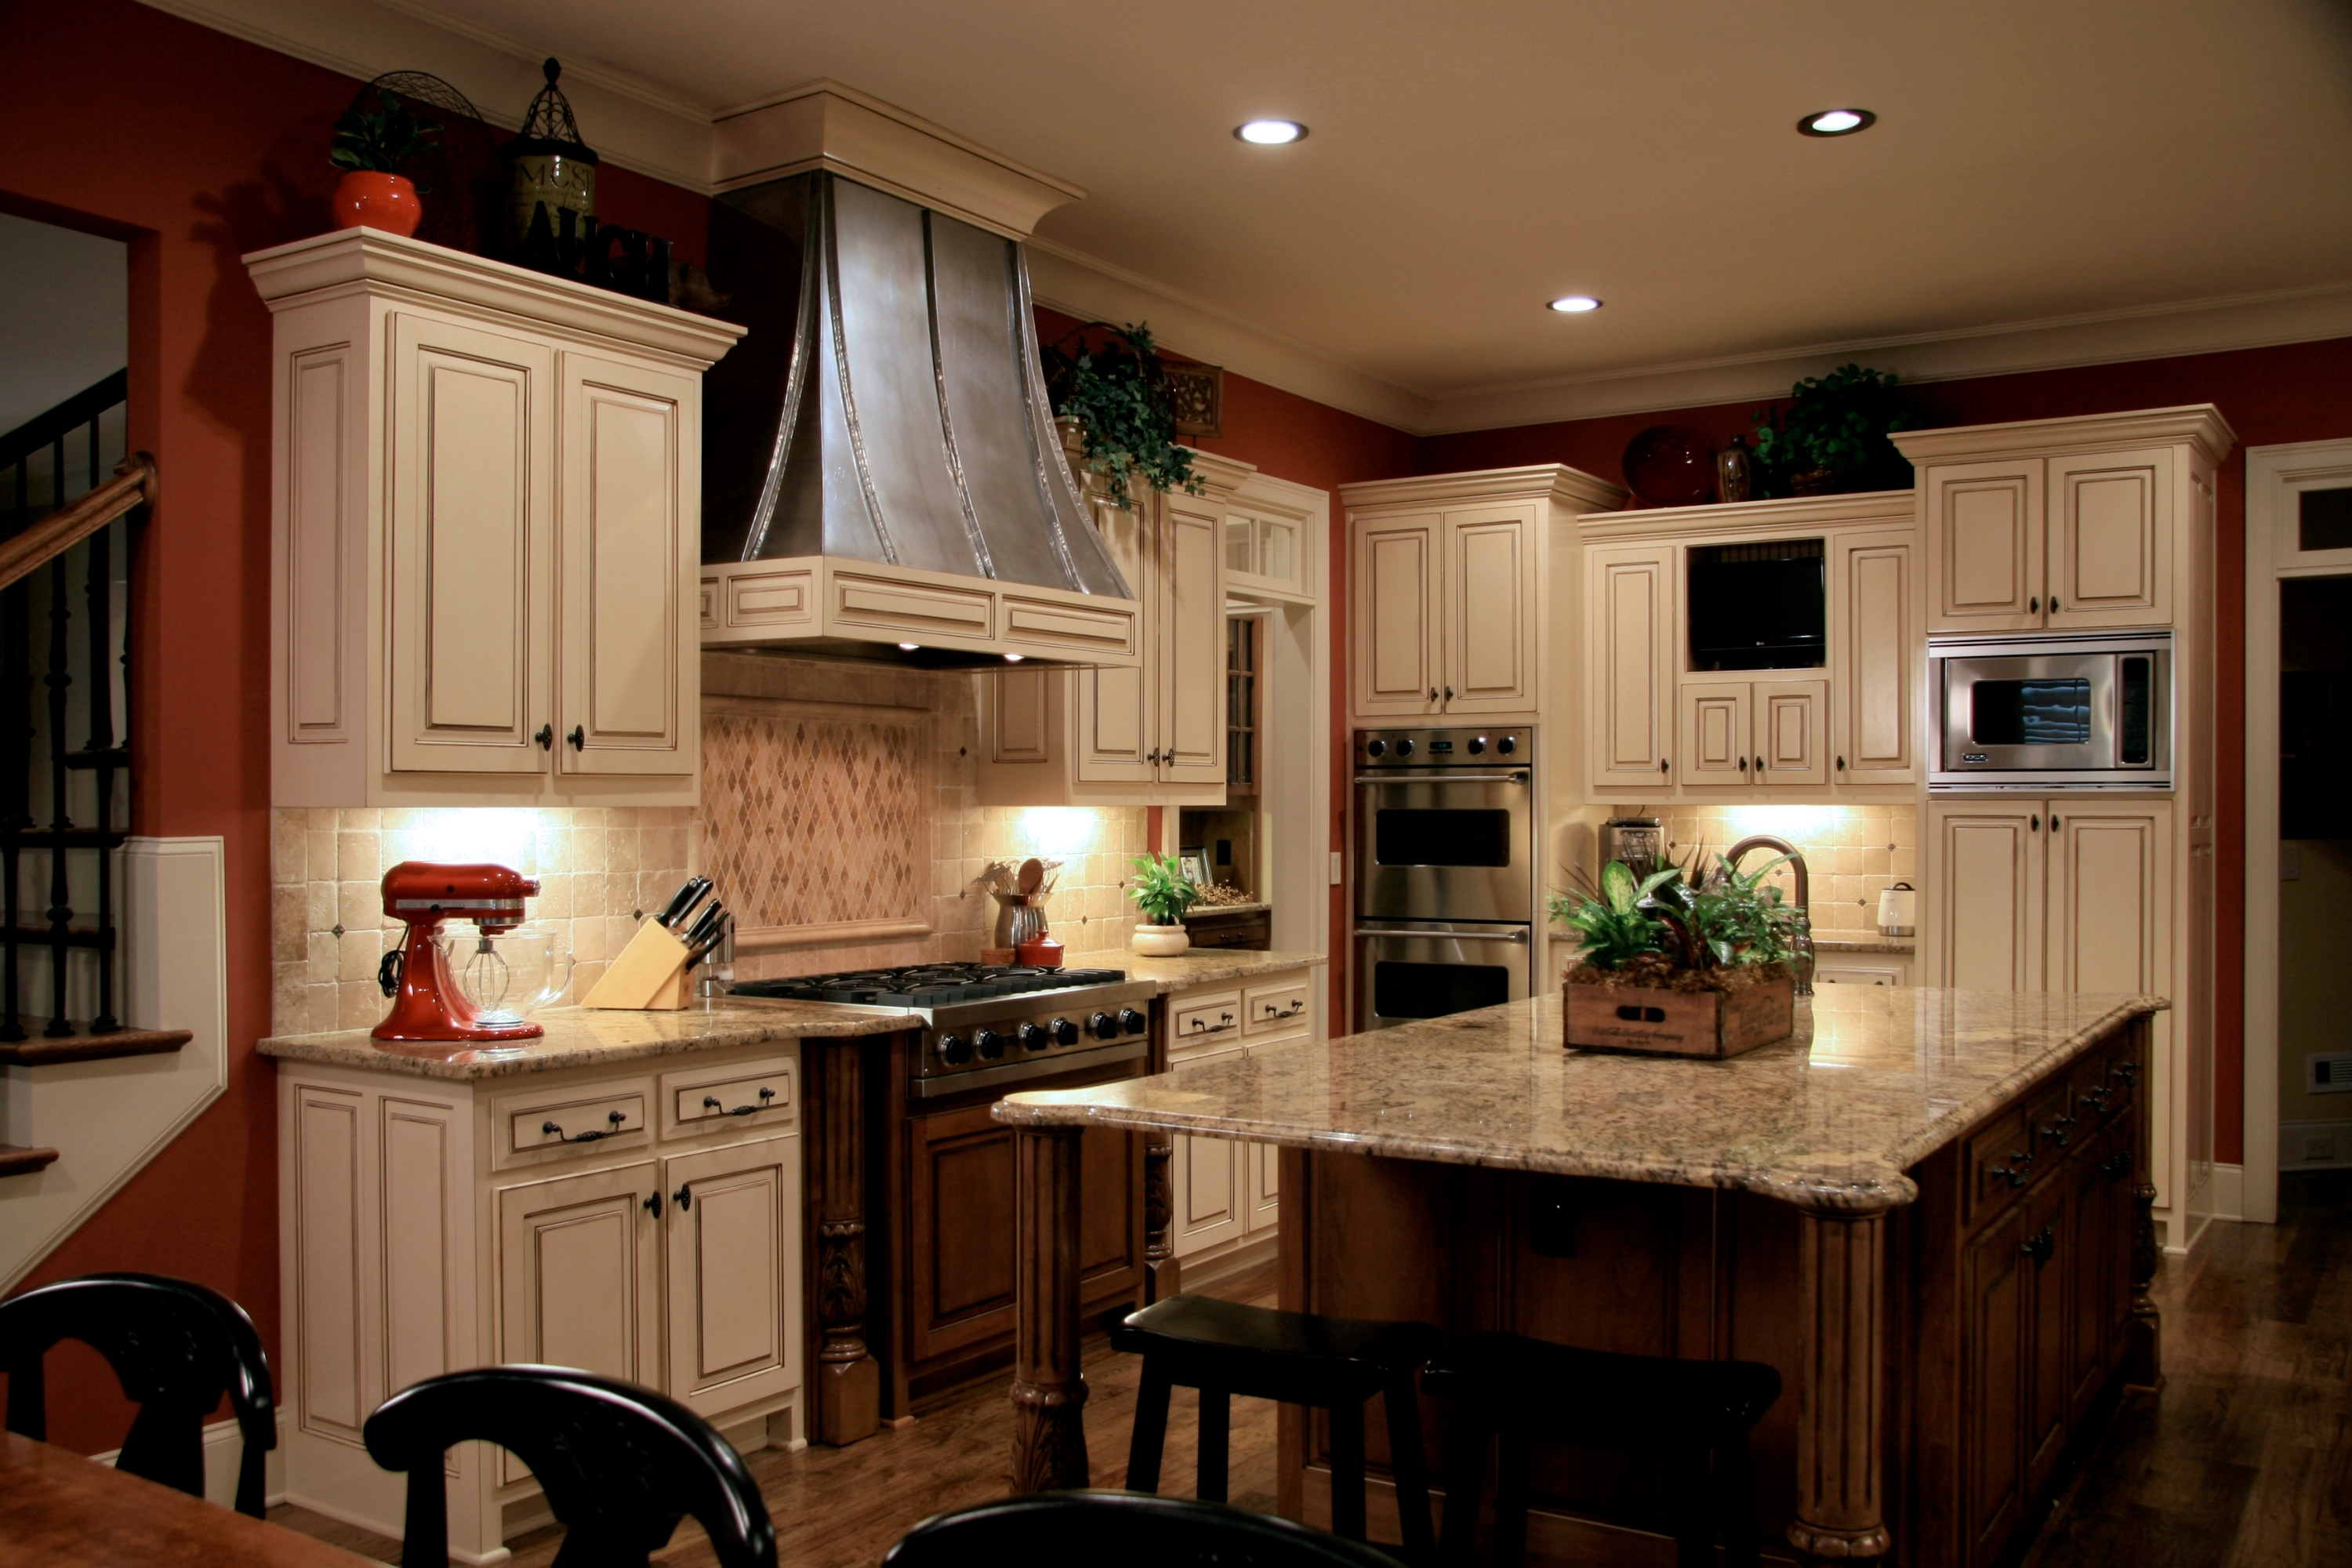 install recessed lighting in a kitchenpro construction